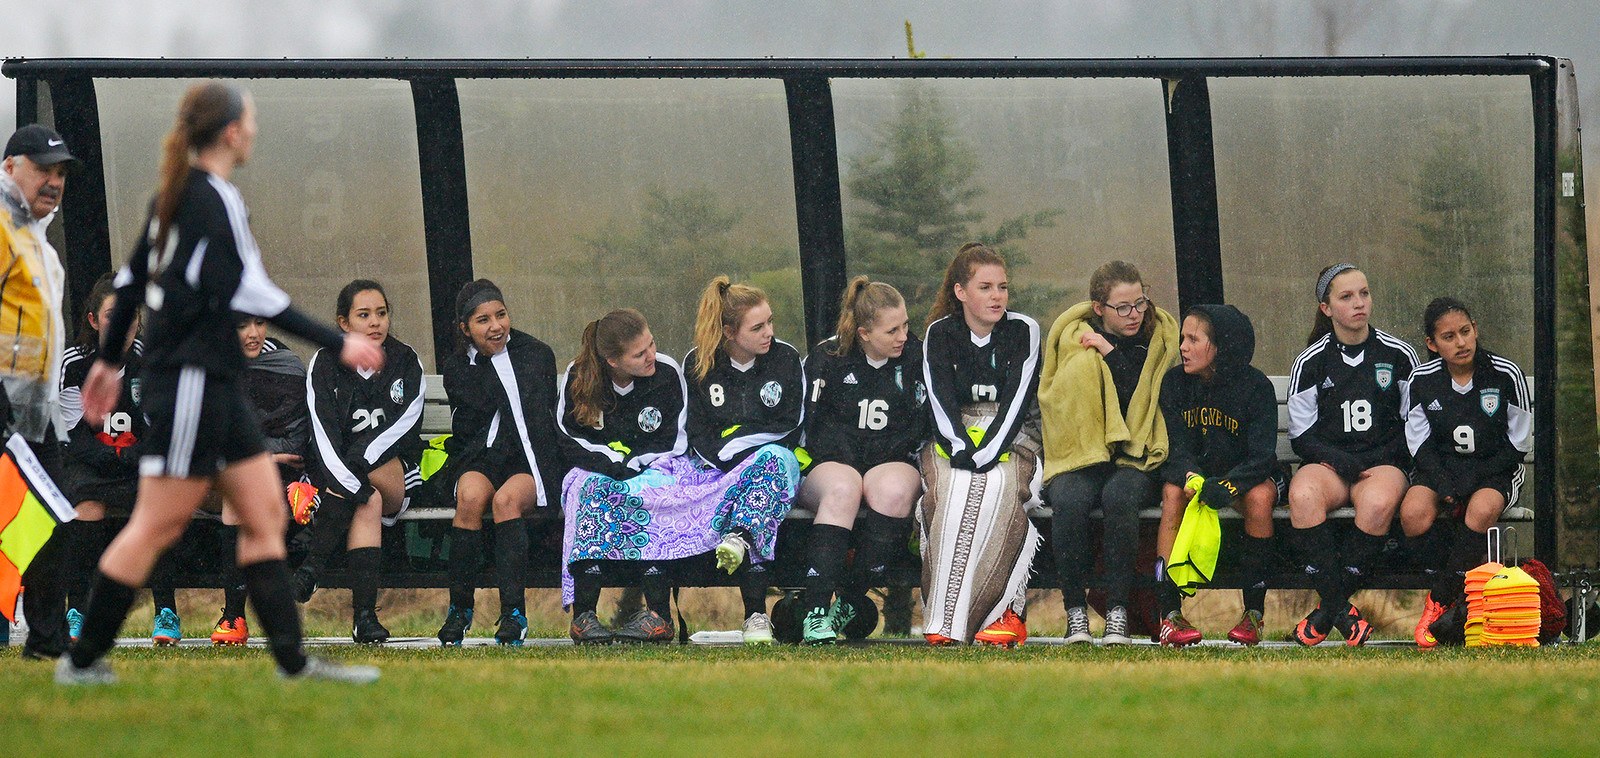 The Woodstock North team attempts to stay warm and dry on the bench Monday April 3, 2017, during a game at Hampshire High School. Woodstock North won 3-2.